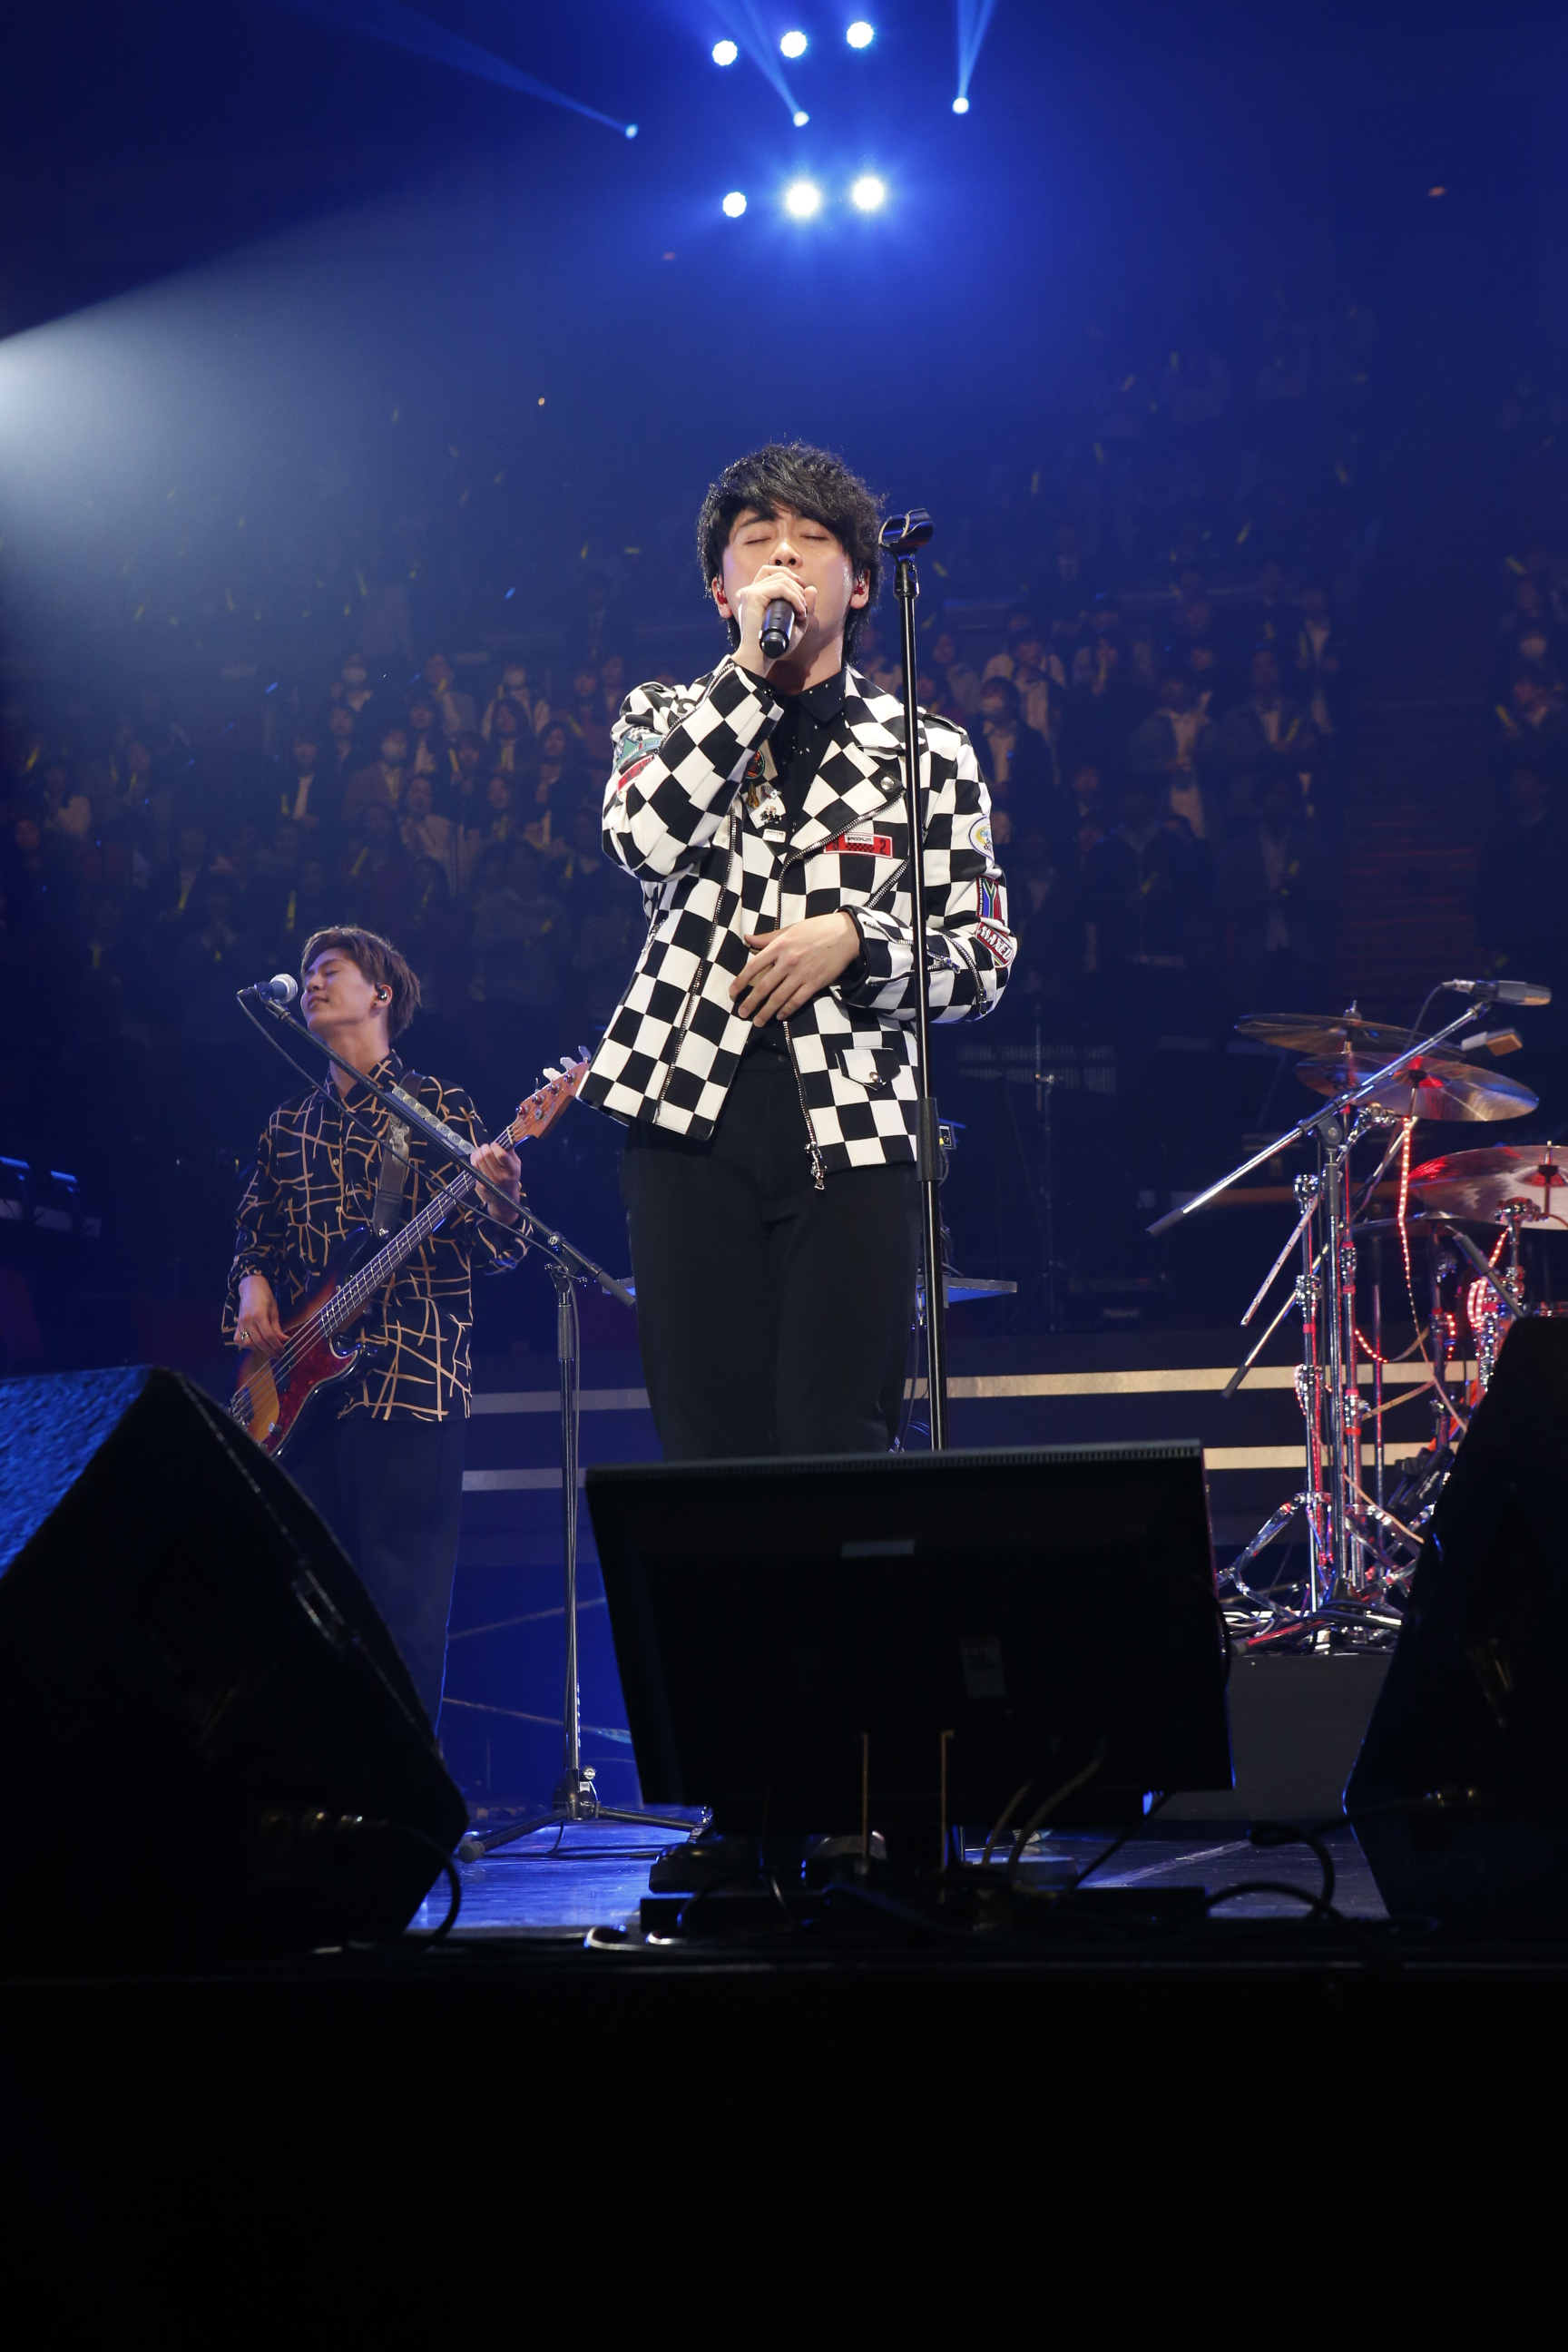 Mrs. GREEN APPLE LIVE SDD 2018 OFFICIAL PHOTO